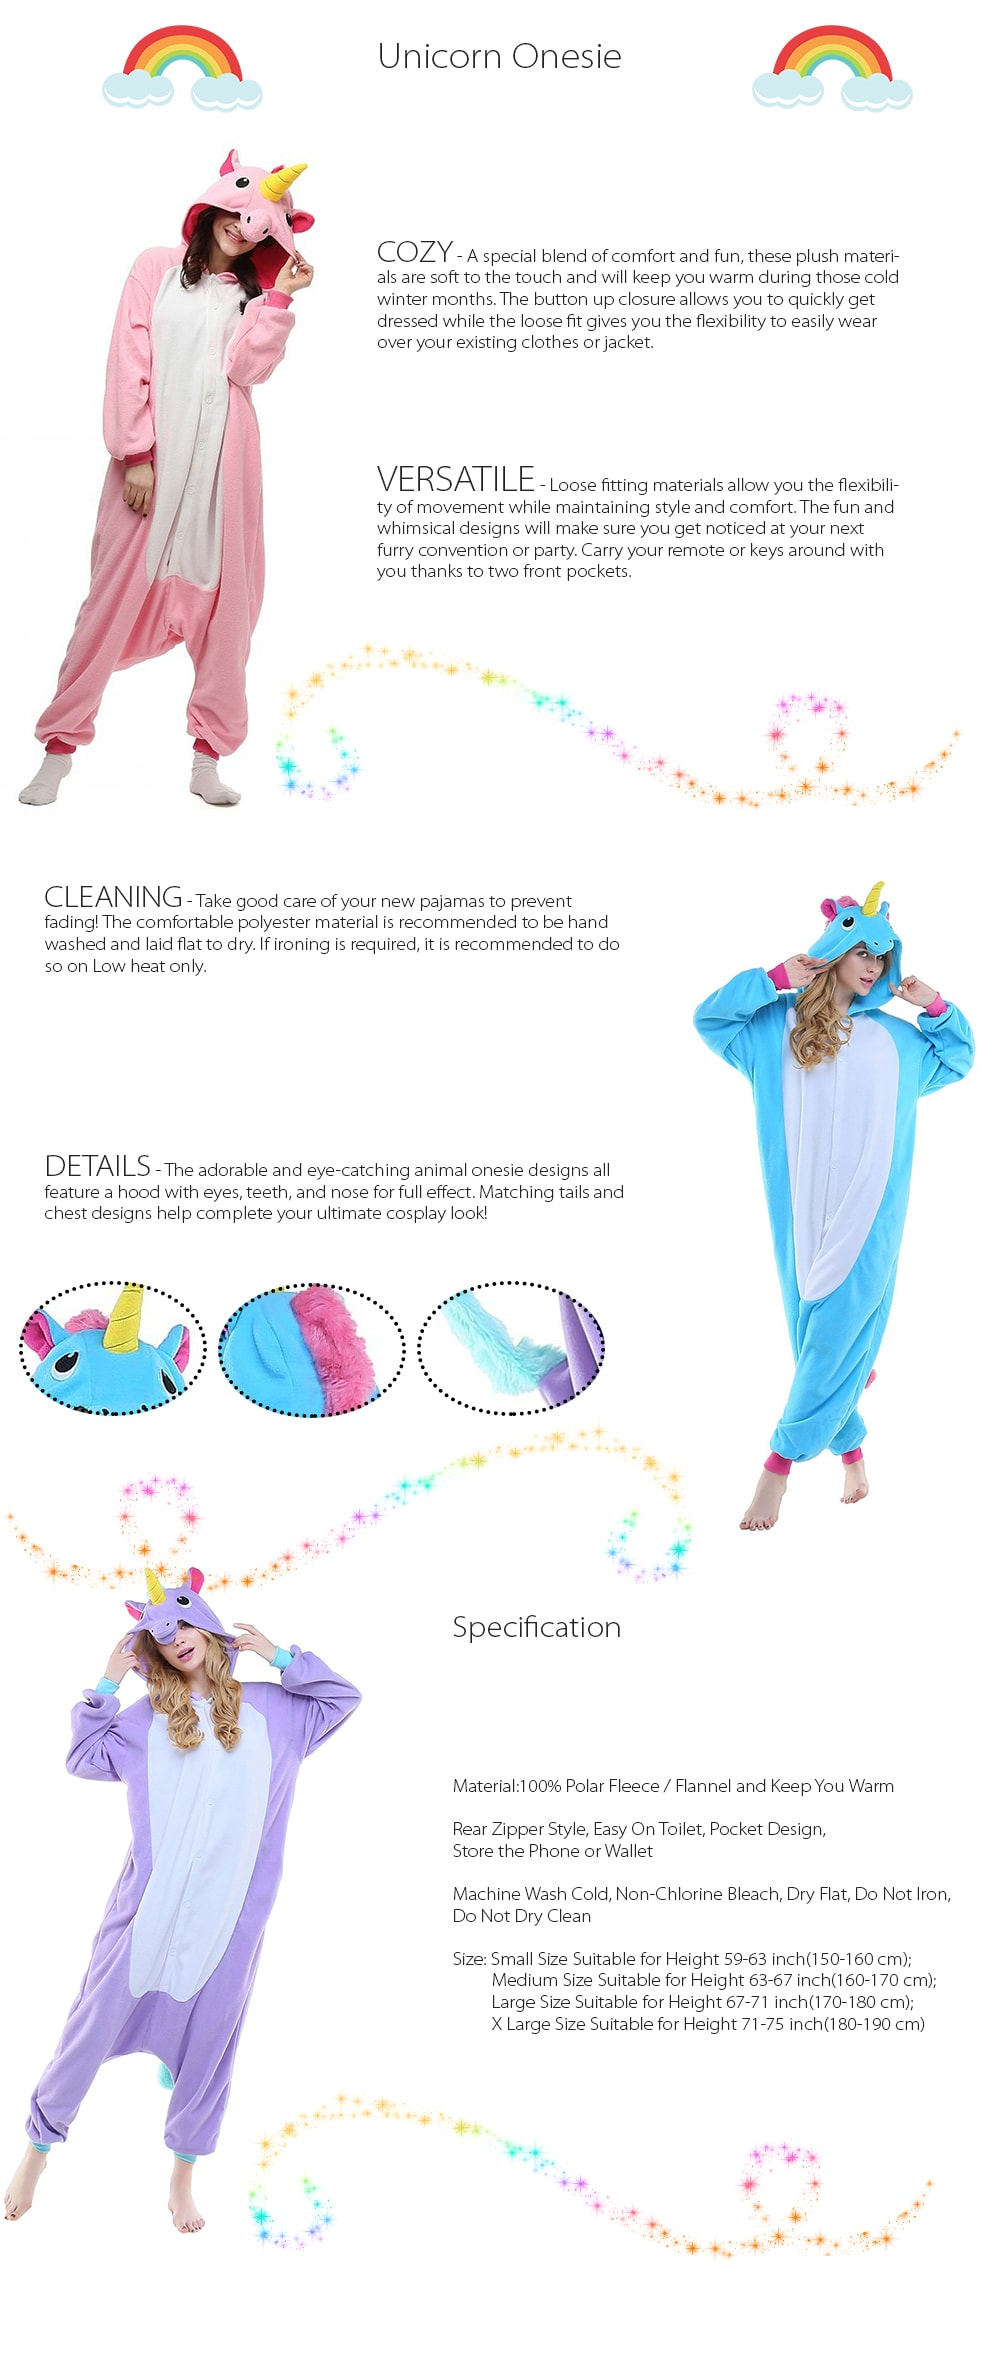 Unicorn Pajamas Adorable And Eye-Catching